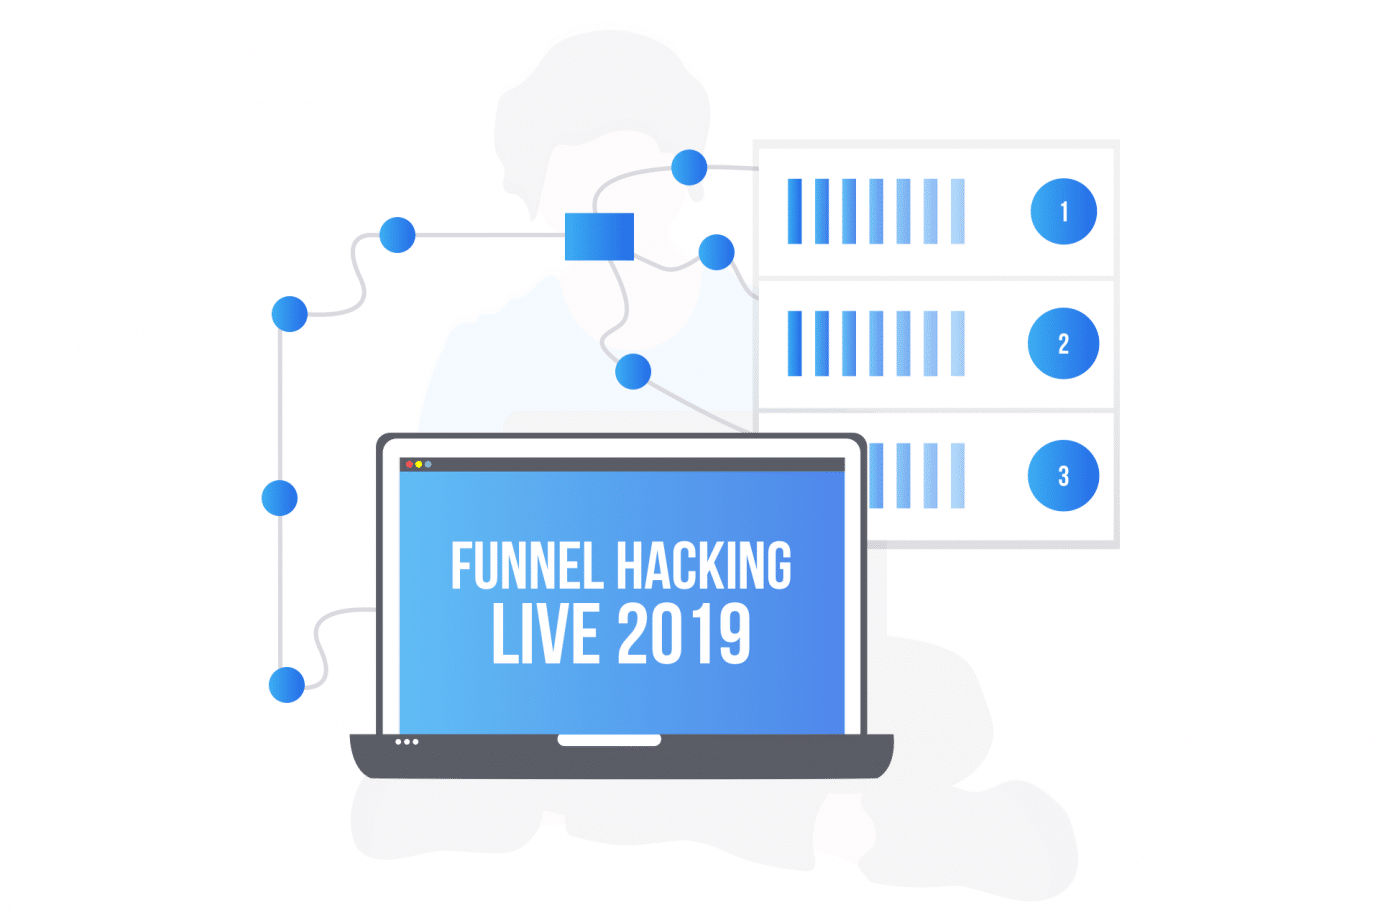 Funnel Hacking Live 2019: Conference Review, Pictures, and Commentary